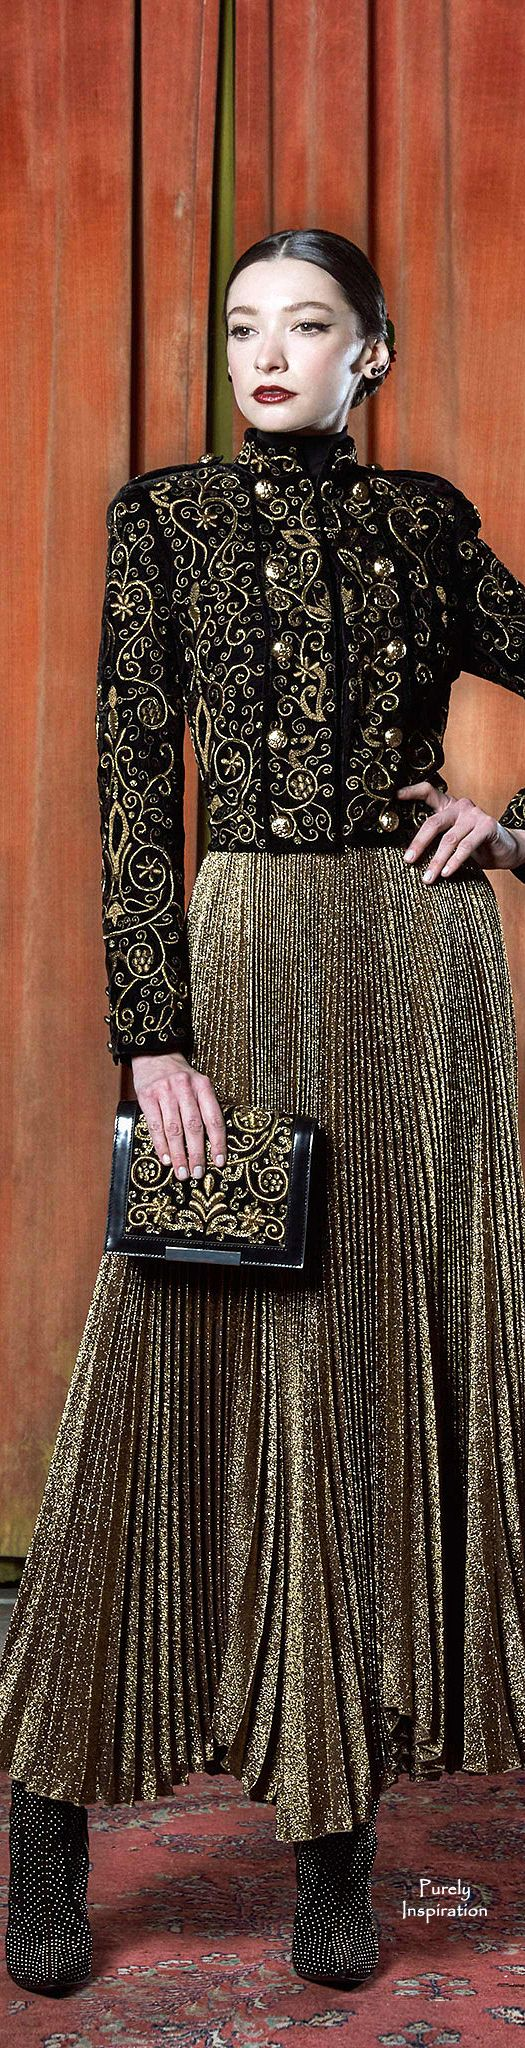 Alice + Olivia Fall 2015 RTW | Purely Inspiration http://www.style.com/fashion-shows/fall-2015-ready-to-wear/alice-olivia/collection